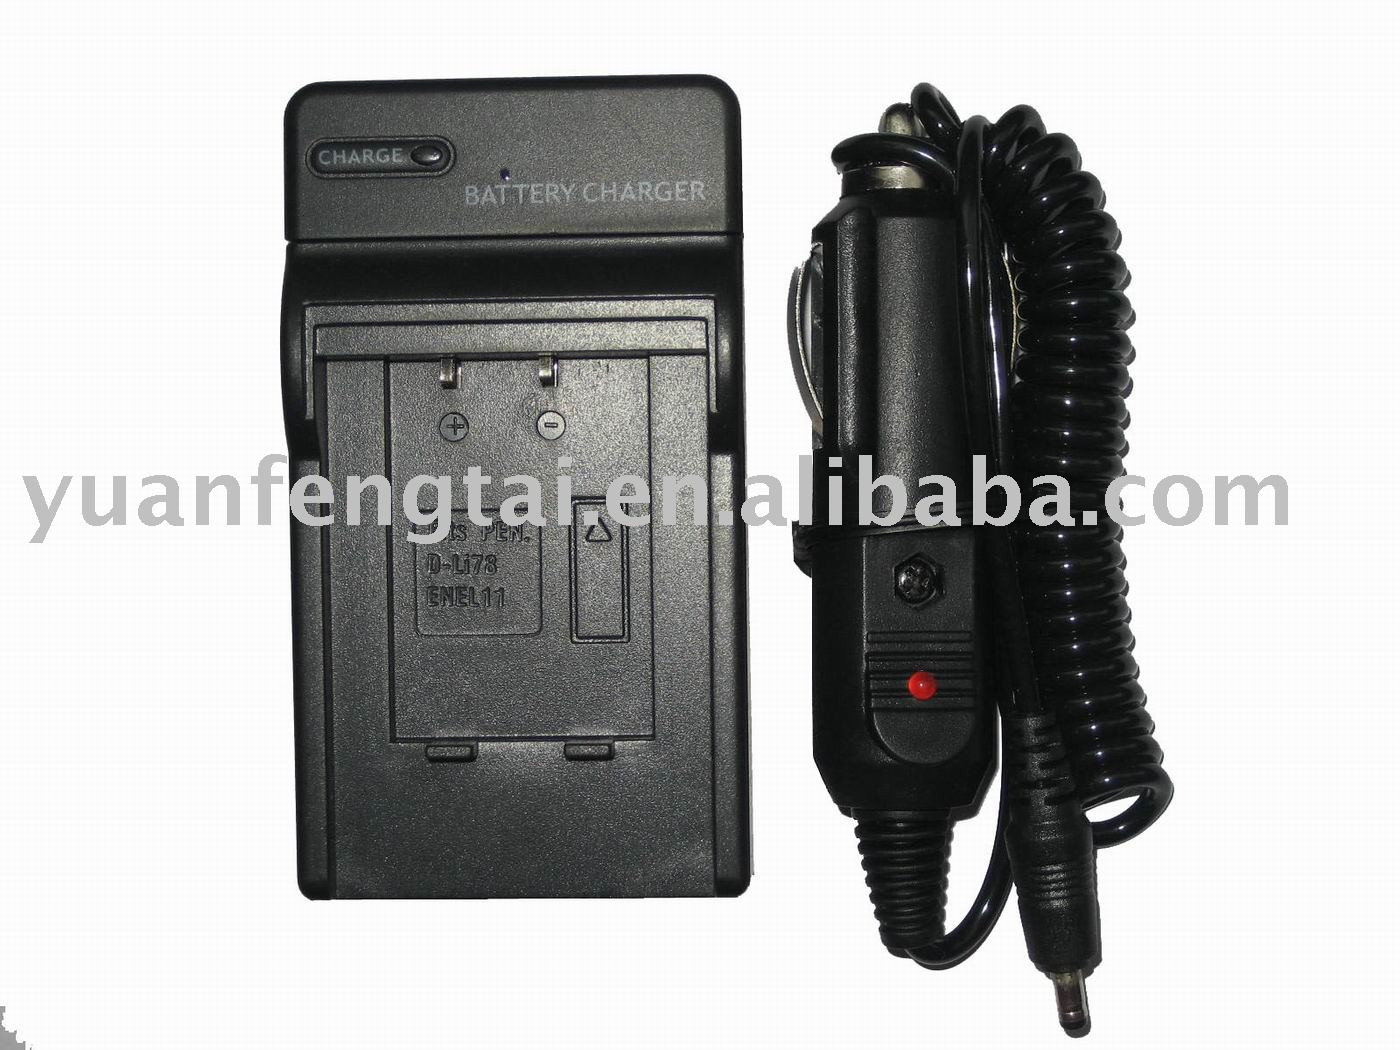 D-Li78 Camera Charger Digital Camera Battery Charger for Pentax D-Li78